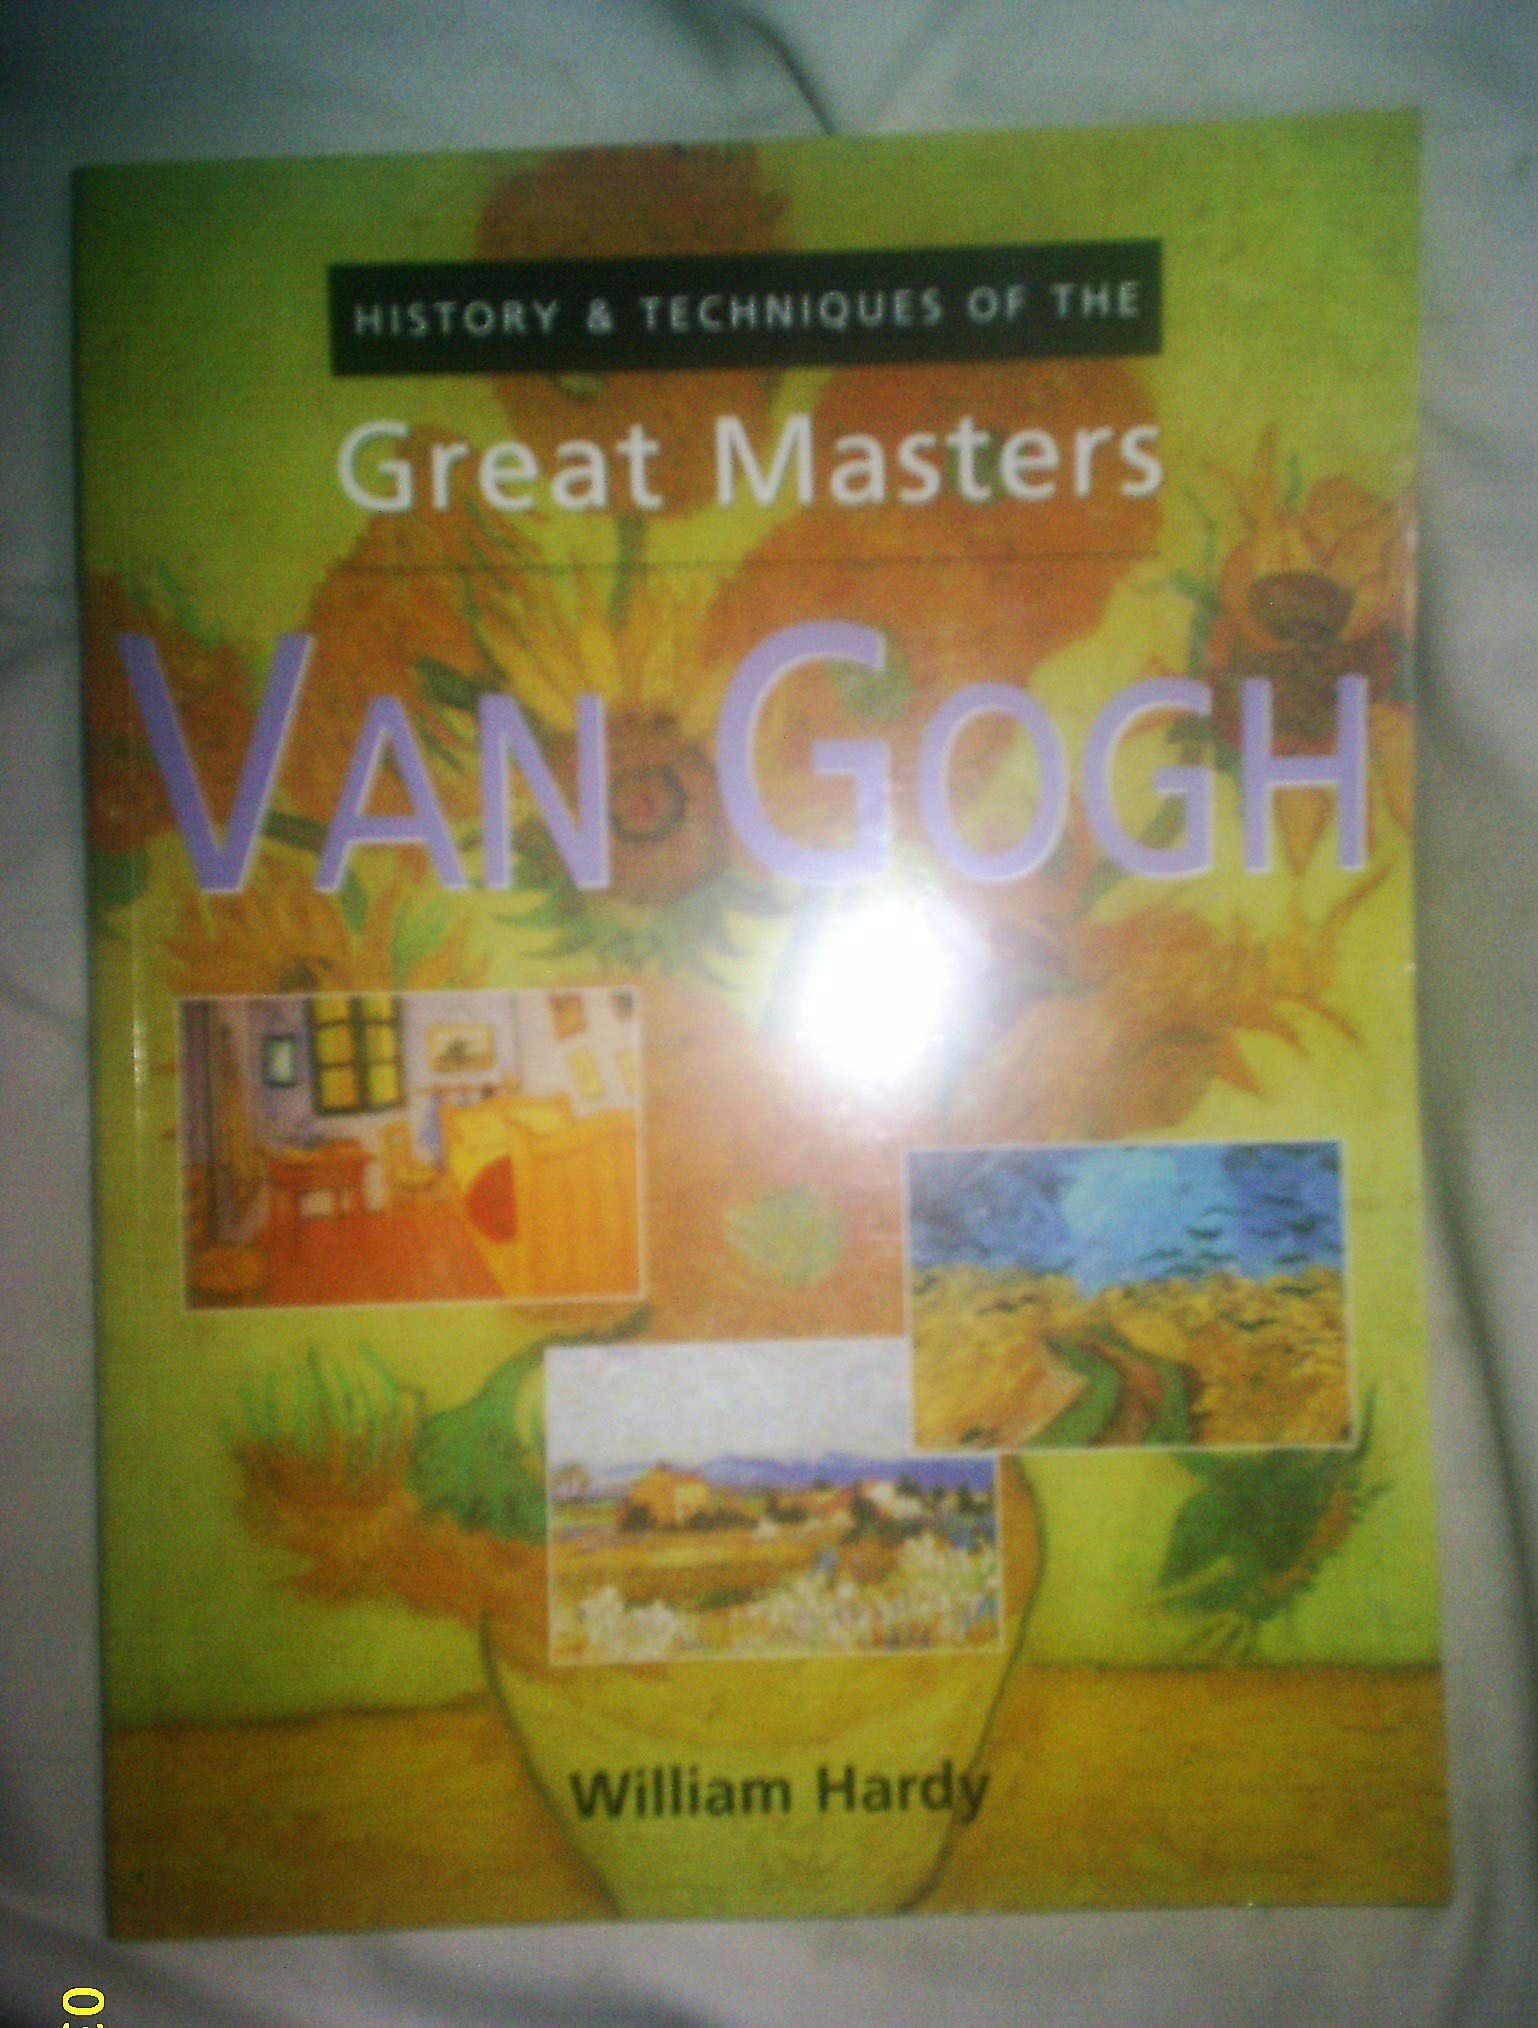 The History and Techniques Fo the Great Masters Van Gogh